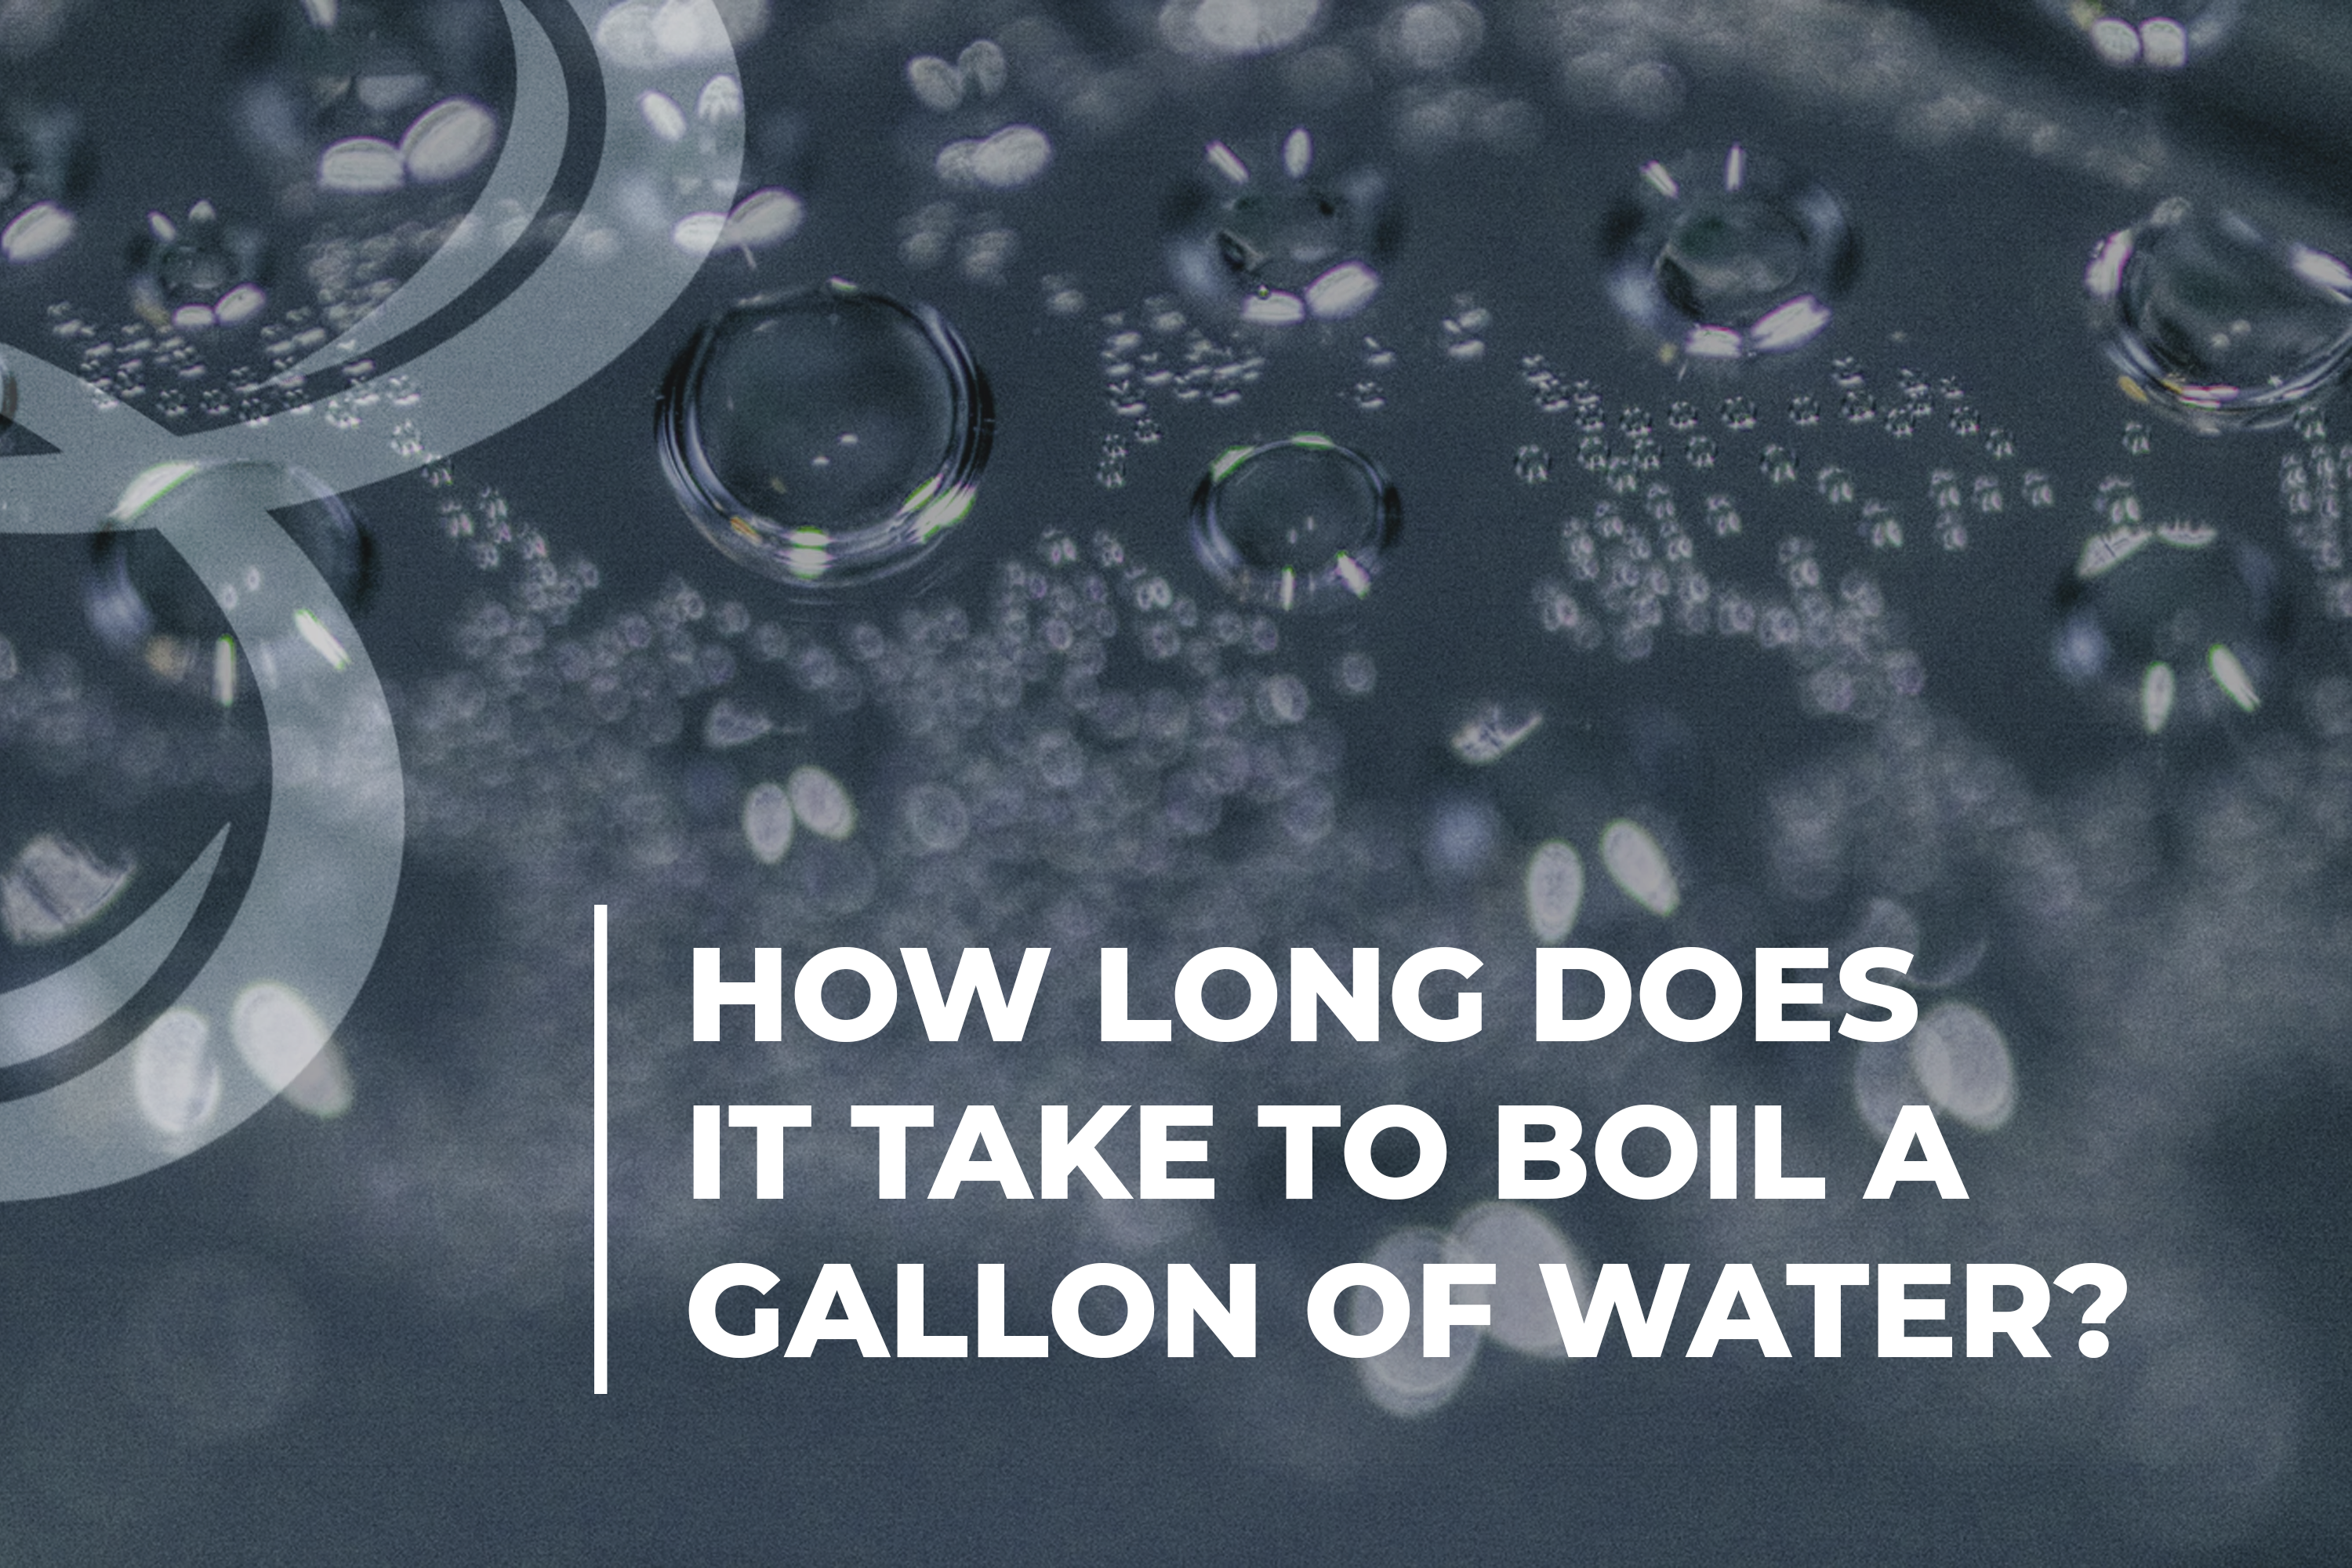 How long does it take to boil a gallon of water